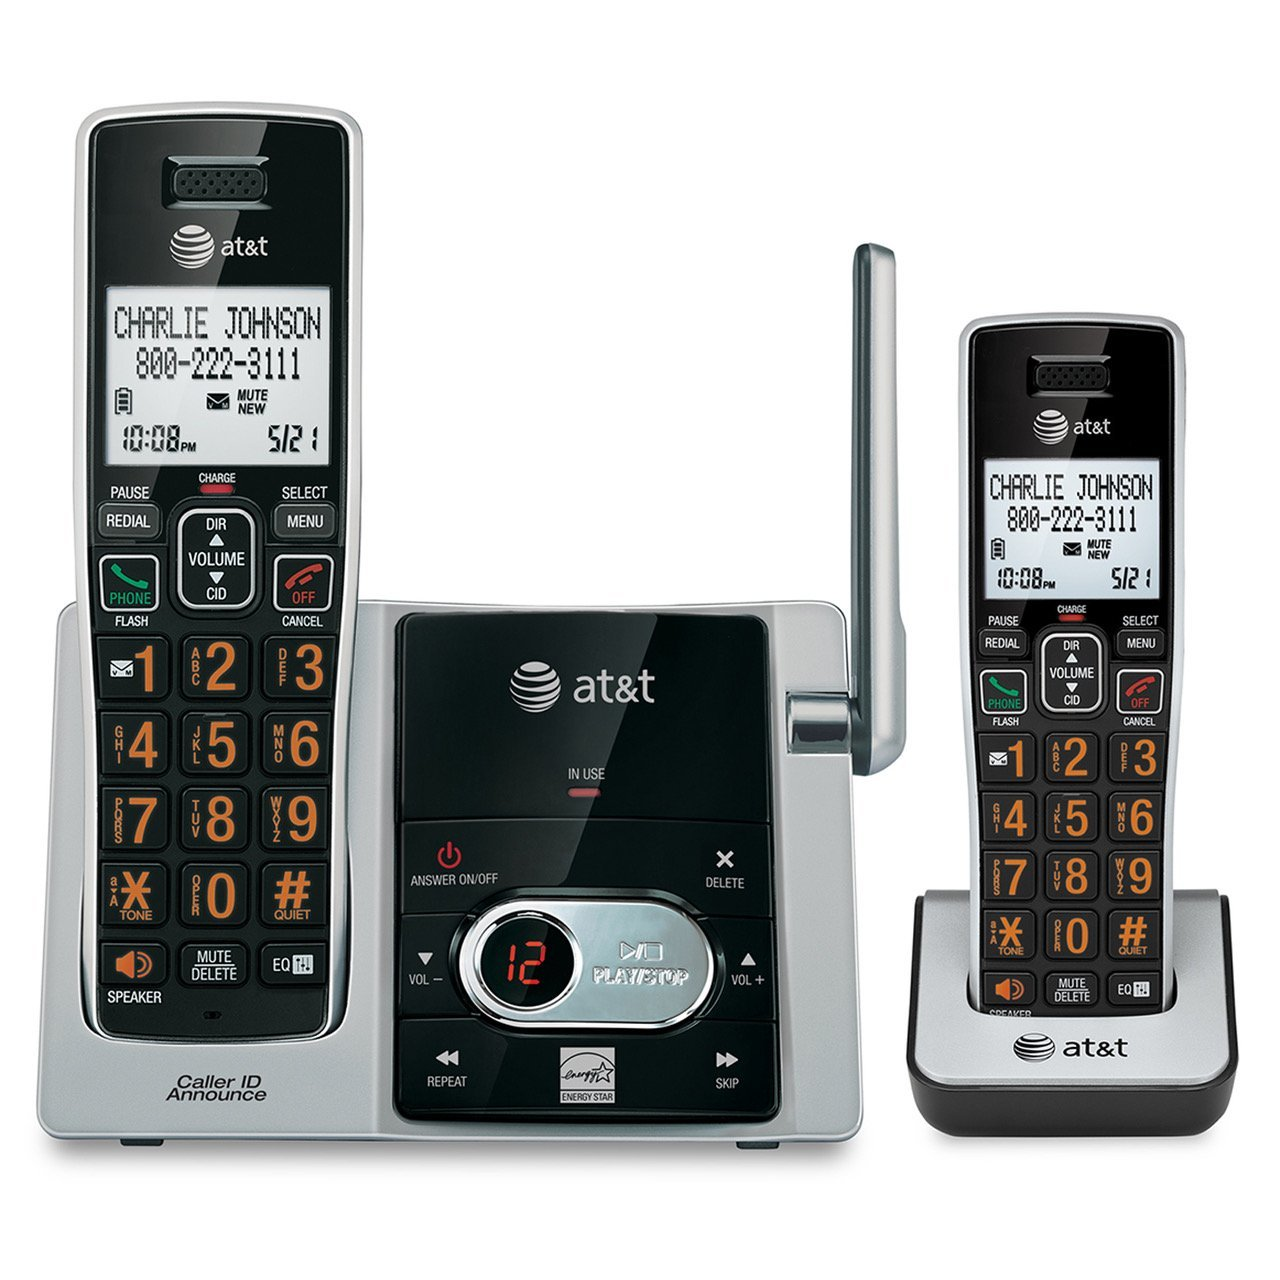 amazon com att cl82213 dect 6 0 expandable cordless phone system rh amazon com at&t wireless home phone manual Manual Four Handsets AT&T Phones